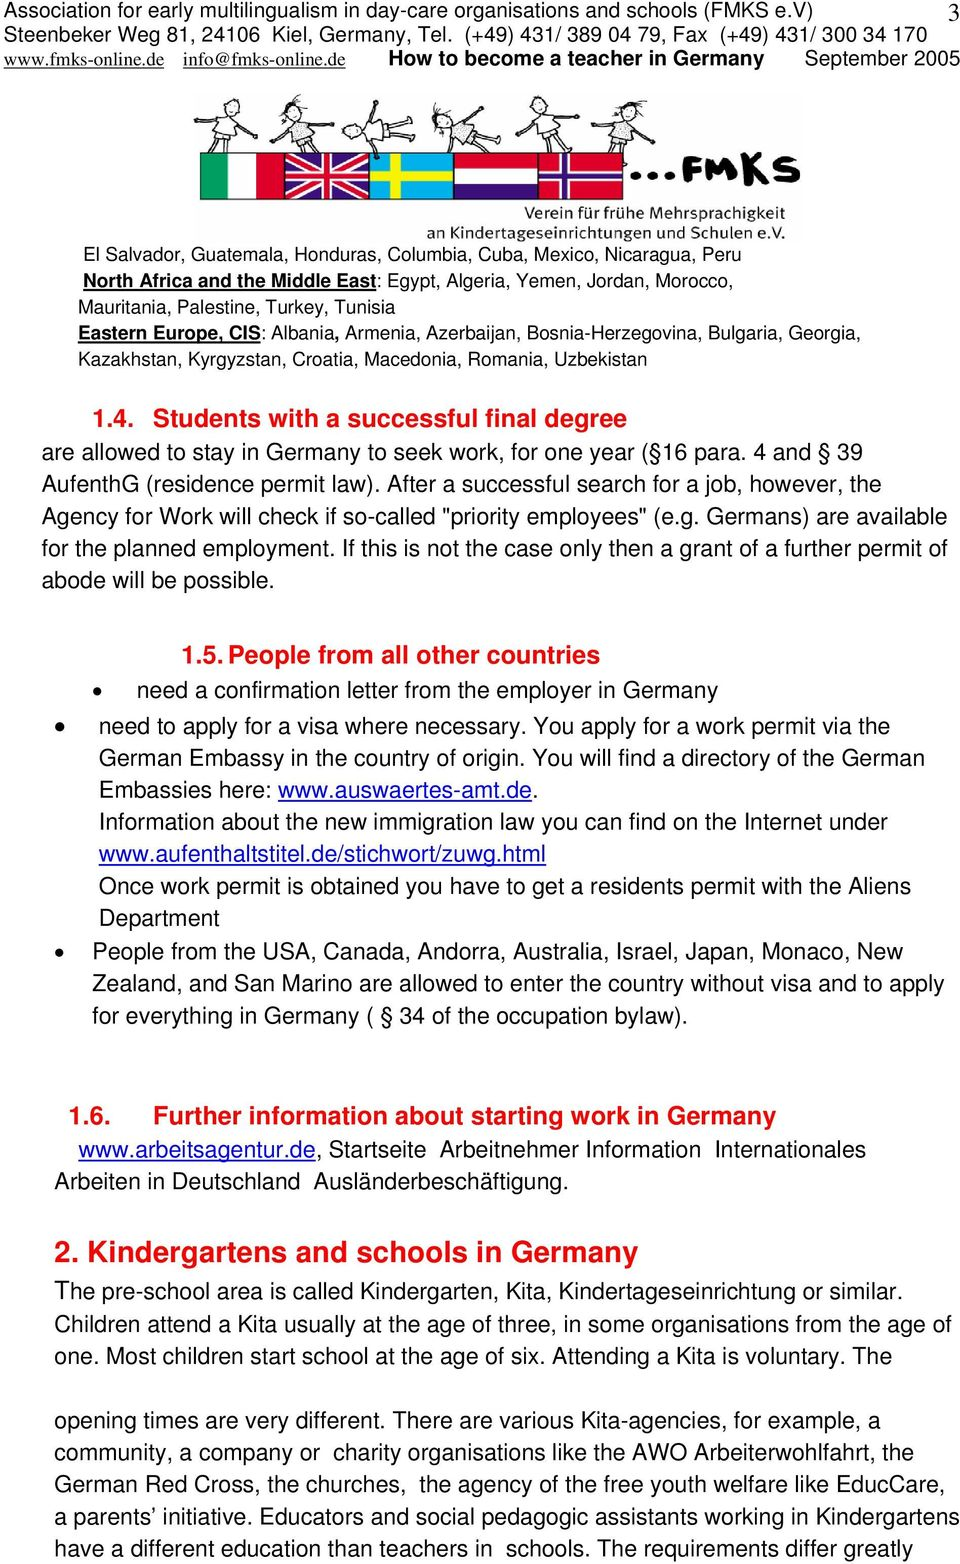 How to become a teacher in Germany - PDF